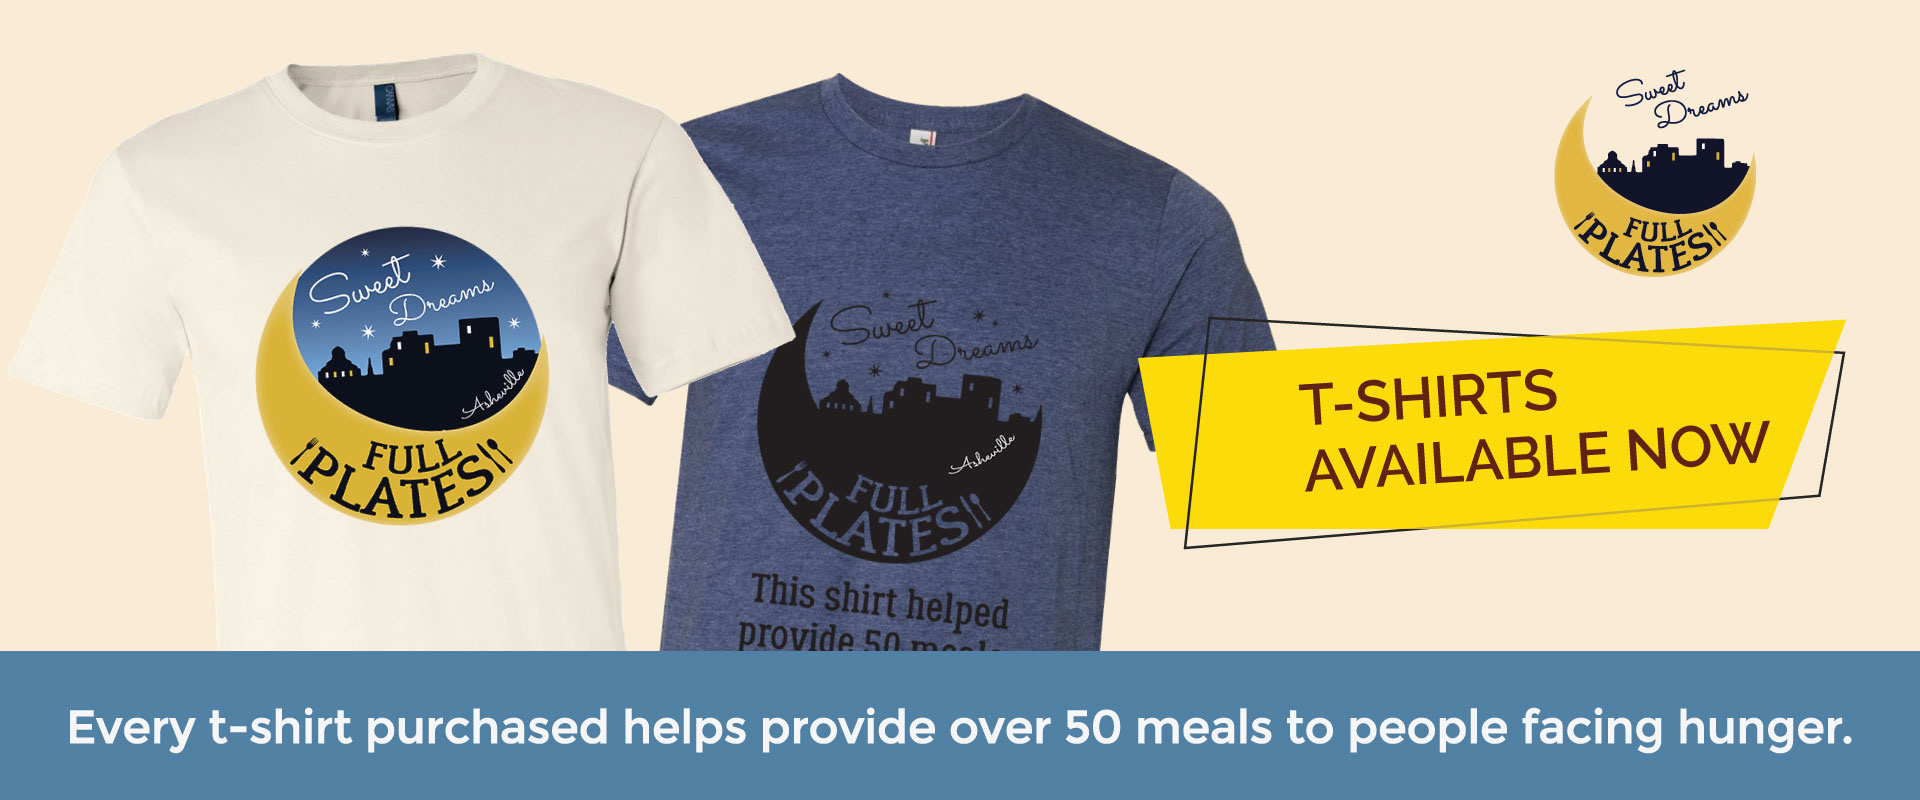 Every T-shirt purchased helps to provide over 50 meals to people facing hunger.